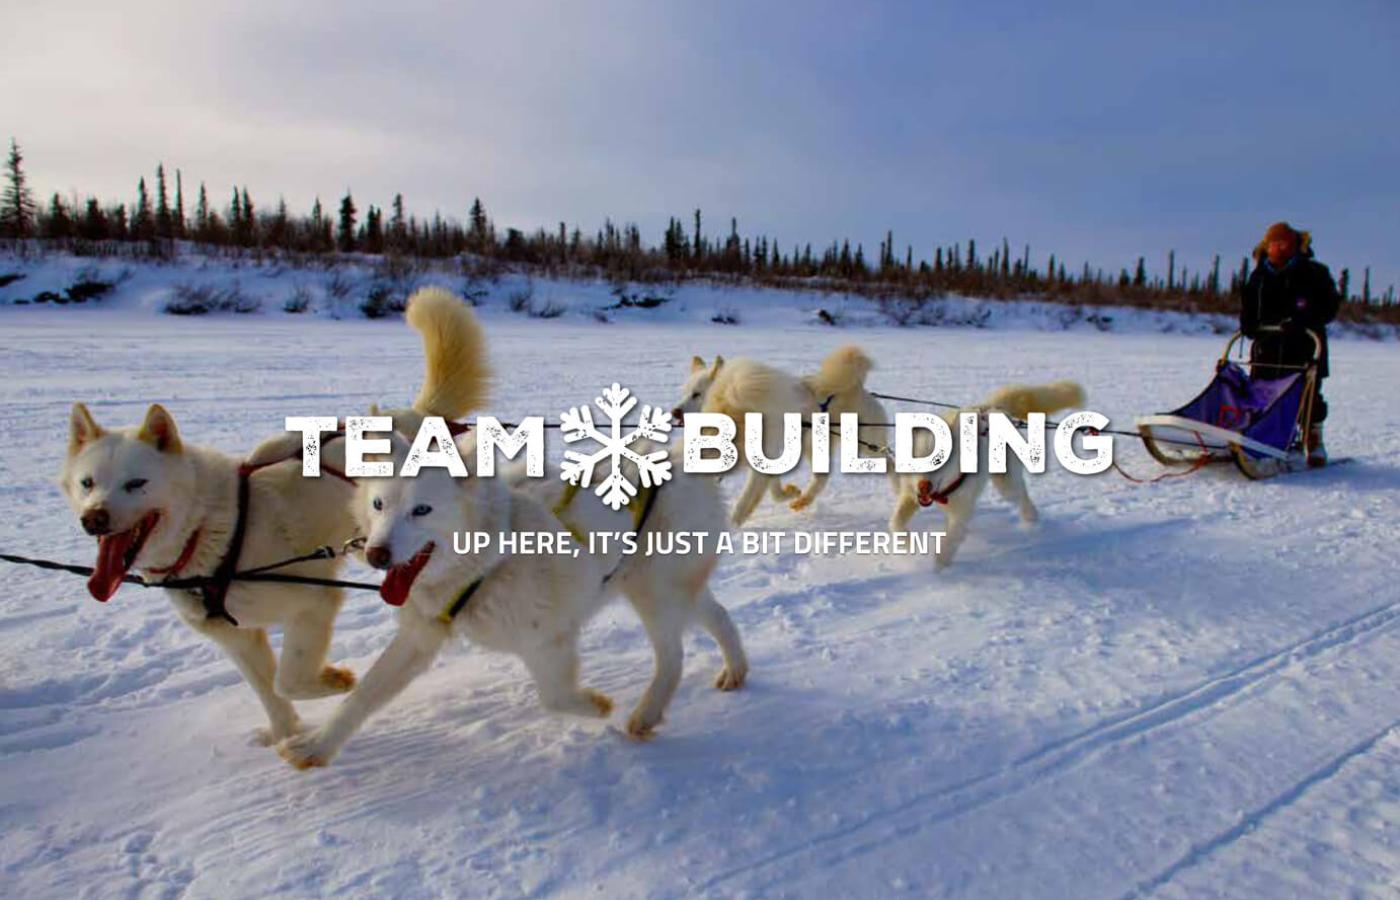 Team Building: Up here it's just a bit different